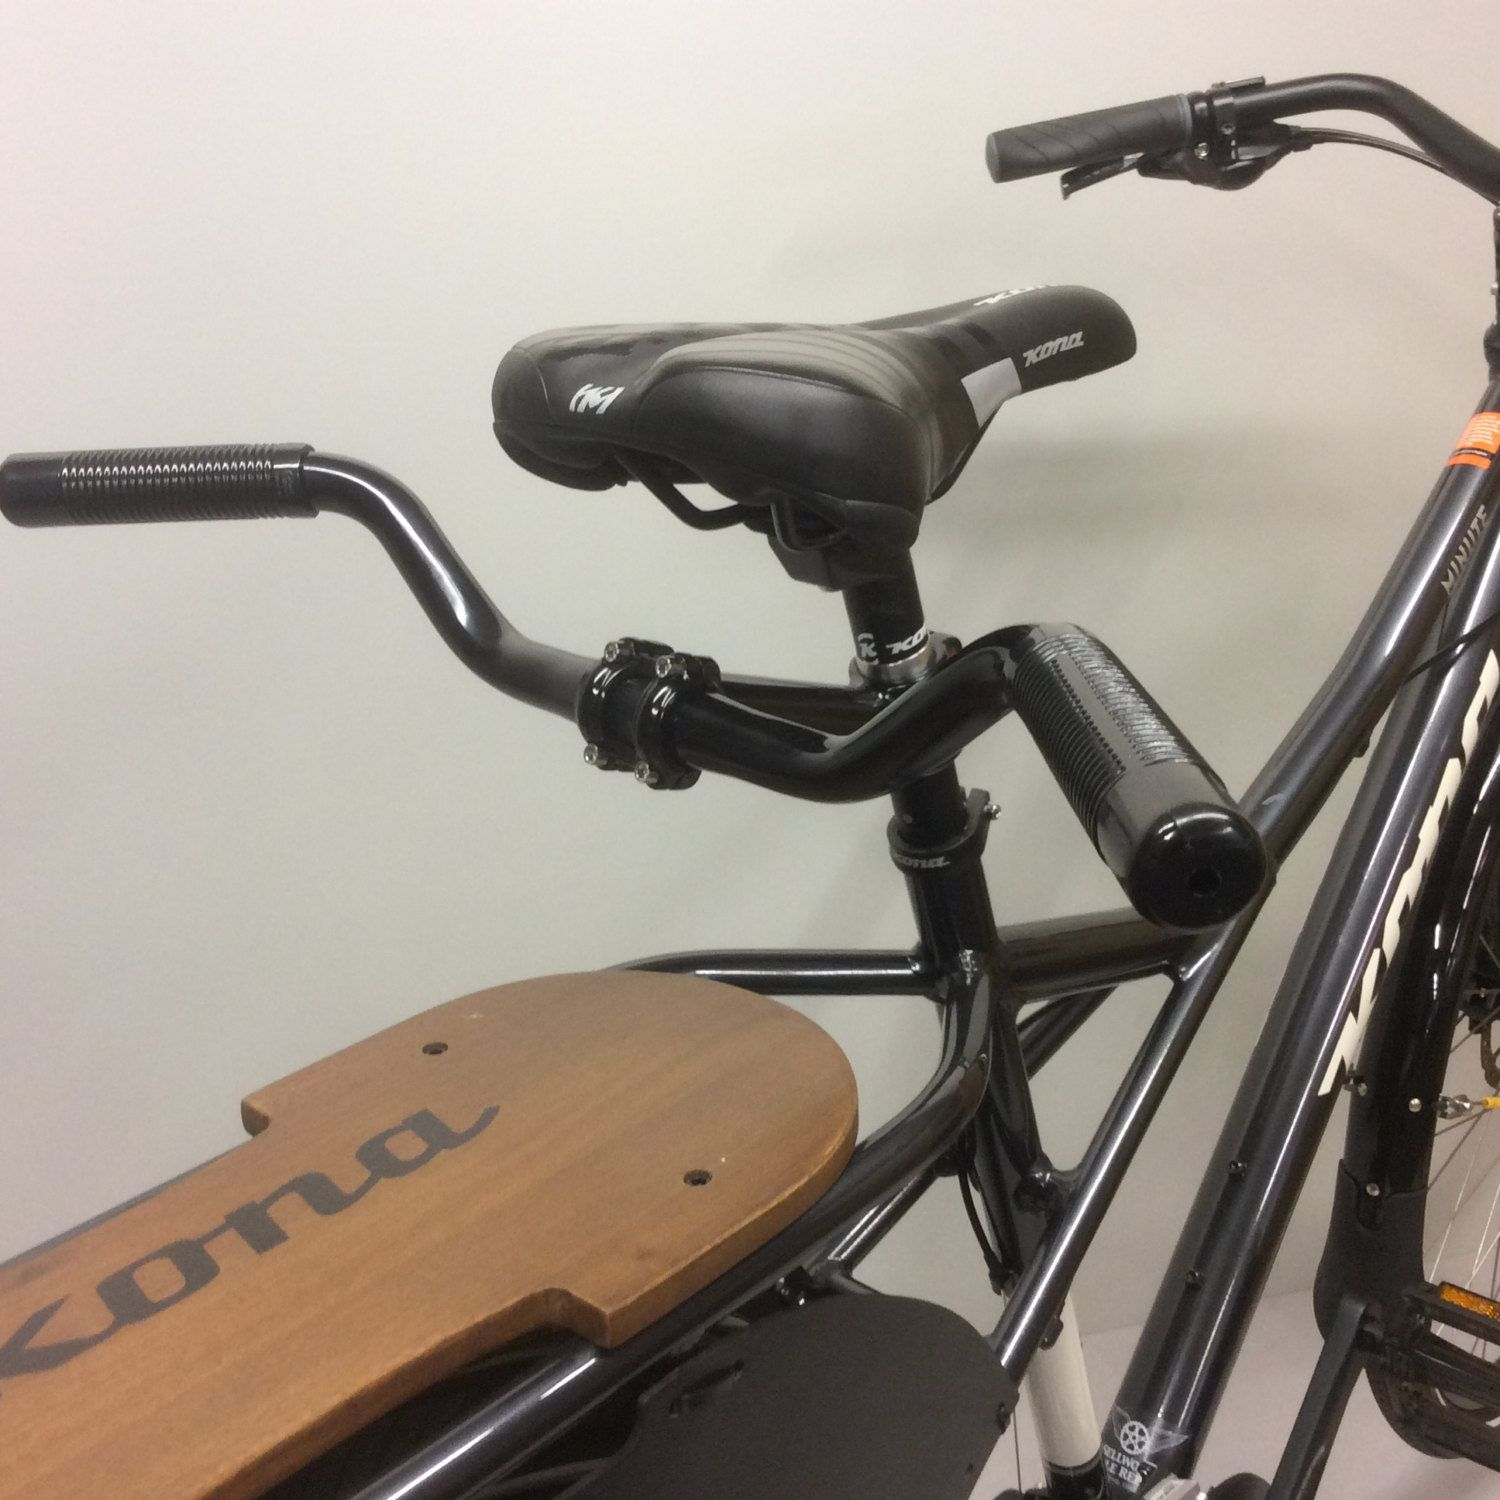 The Stokerbar Attaches To Seatpost Of Kona Minute Or Ute Cargo Bicycle Any Bike With A 28 6mm Diameter Requires At Least 2 Exposed